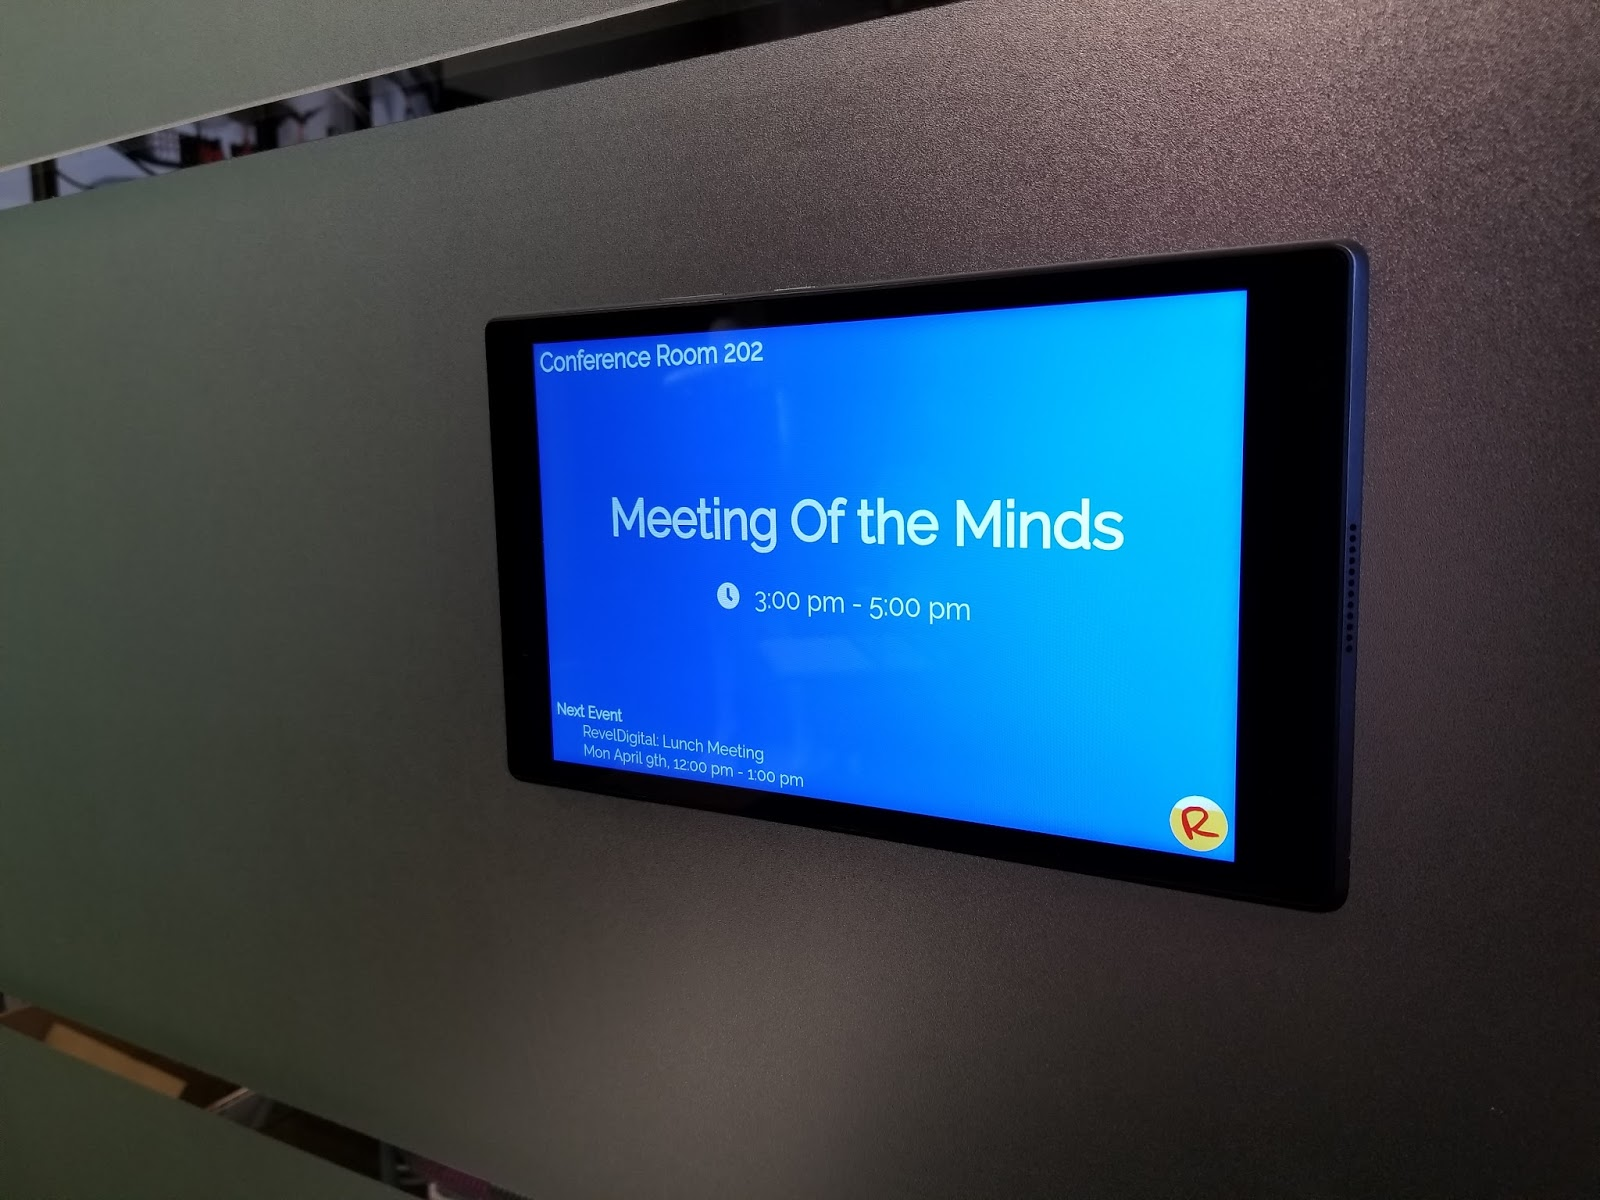 Two New Gadgets Are Now Available One Designed Specifically For Meeting Room Signage And The Other A Minimalistic Weather Gadget Both Are Free To Use And